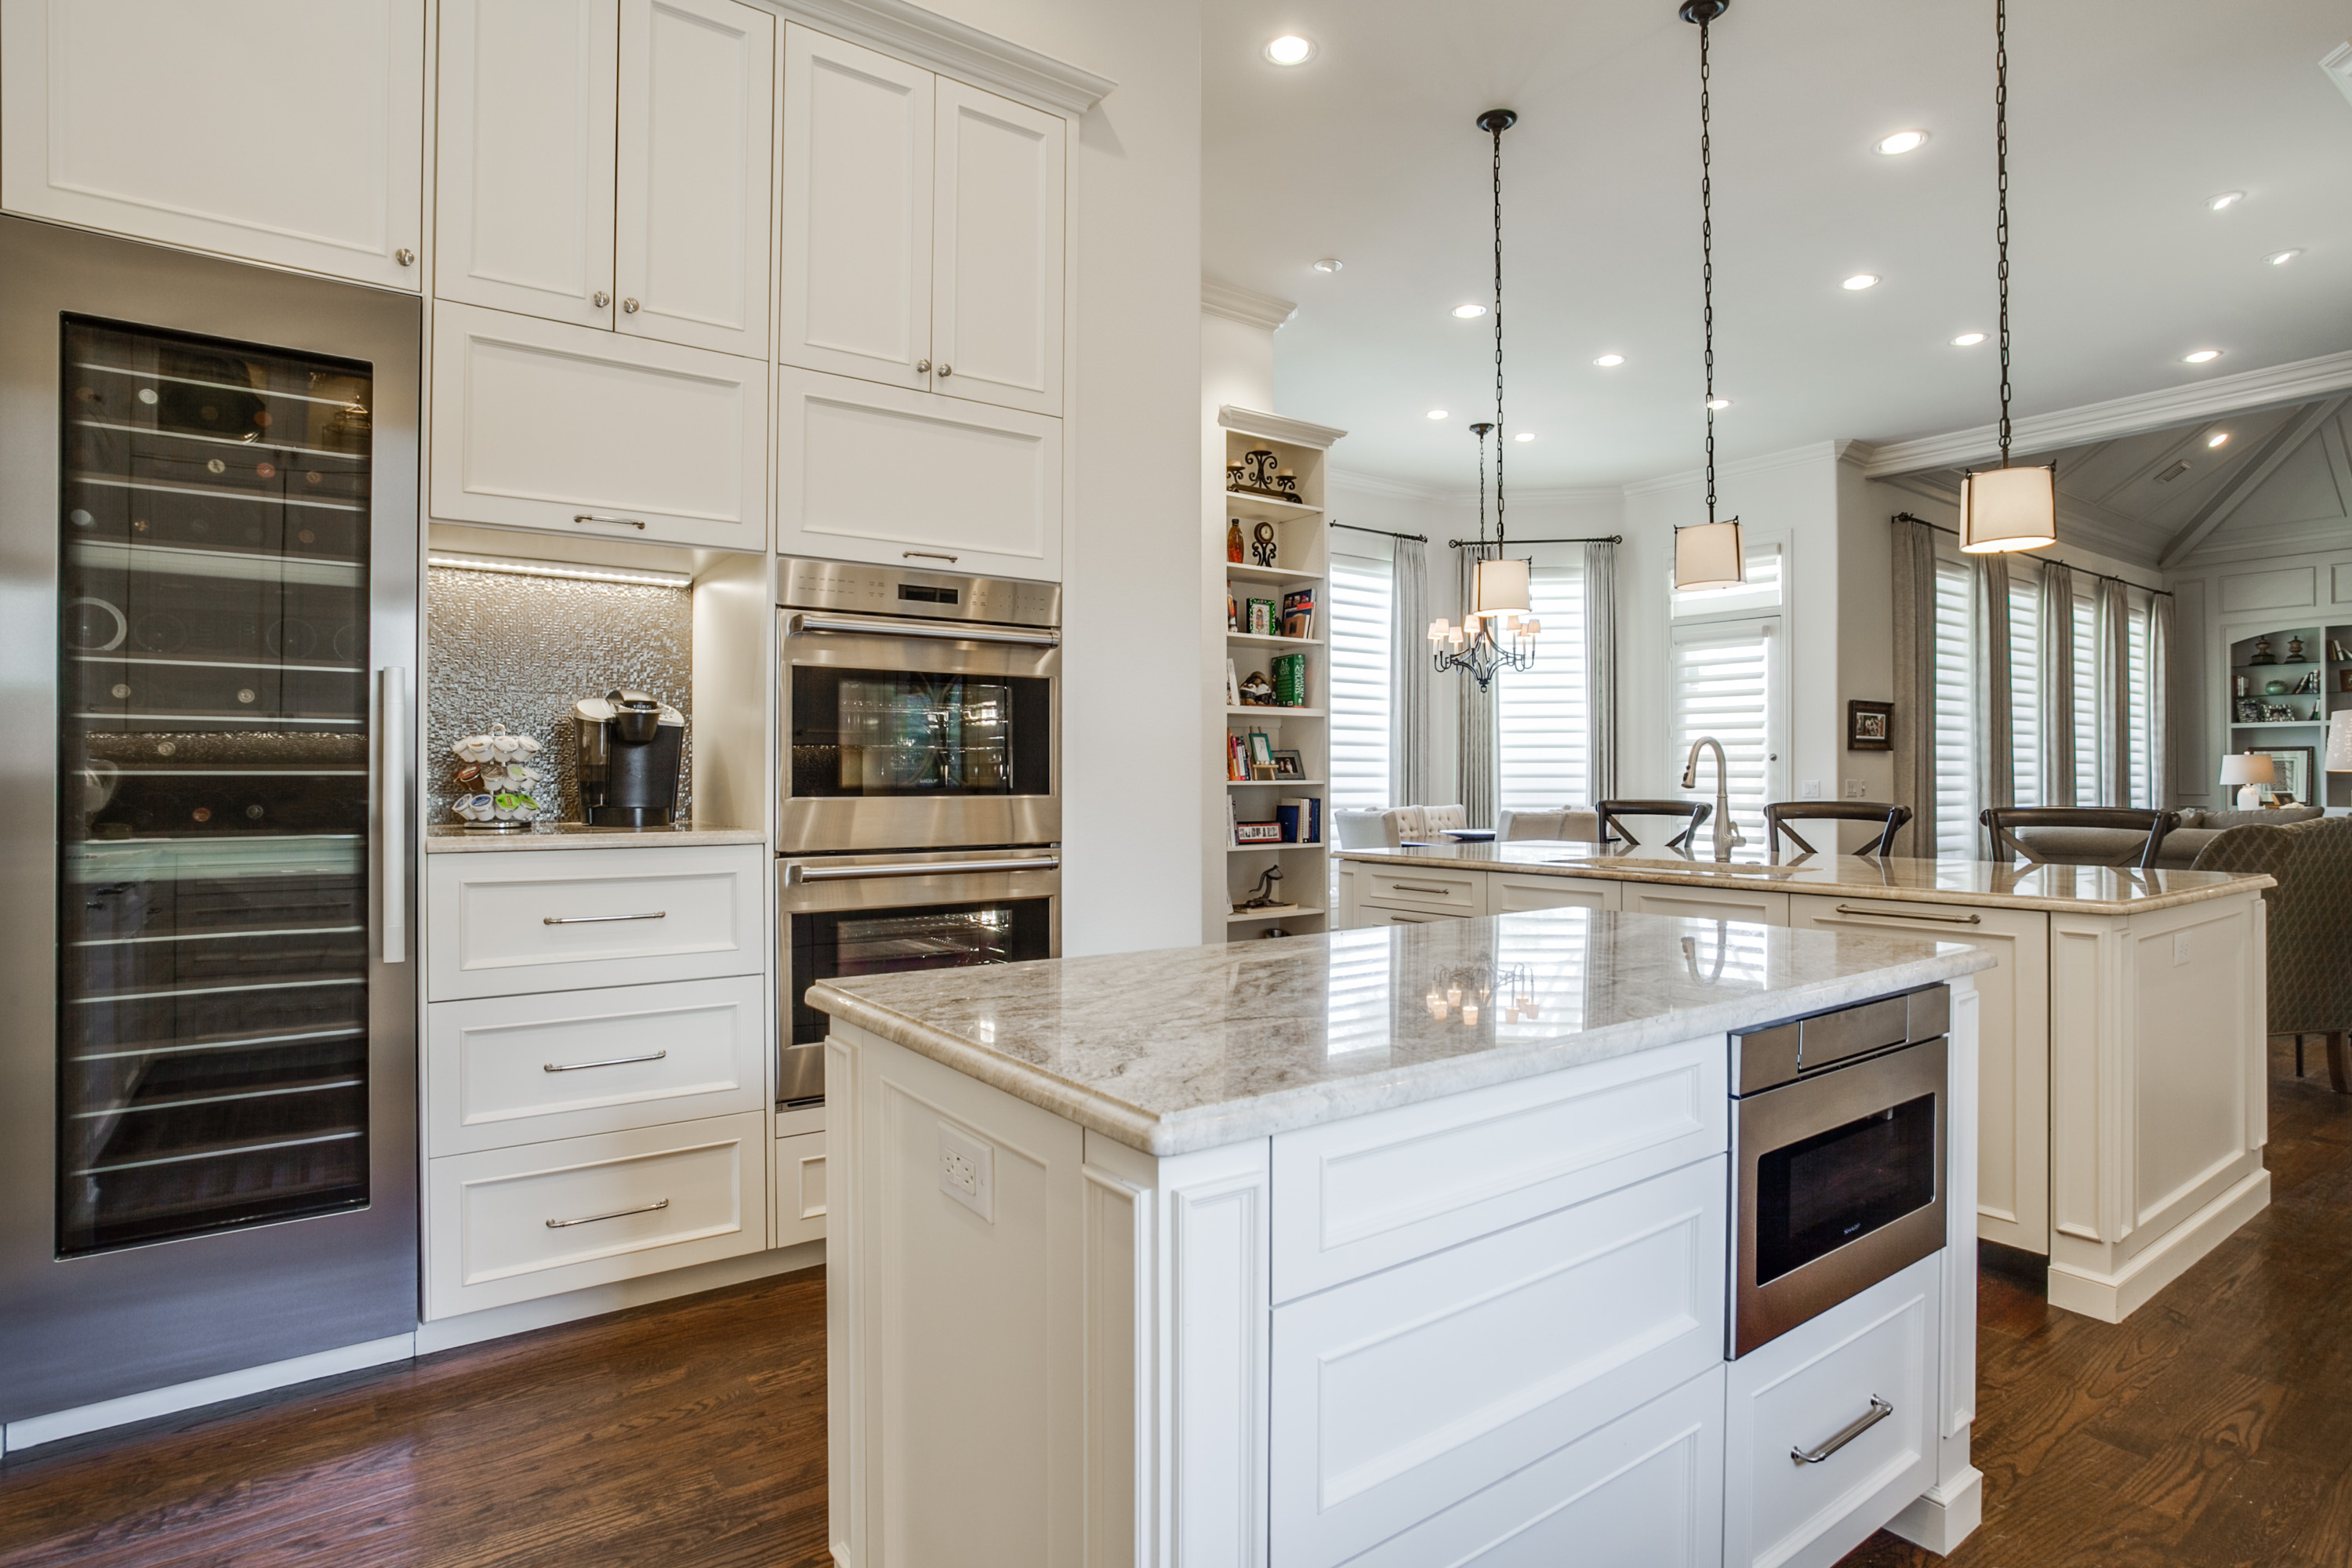 j. williams construction & remodeling, inc. - our work - kitchen